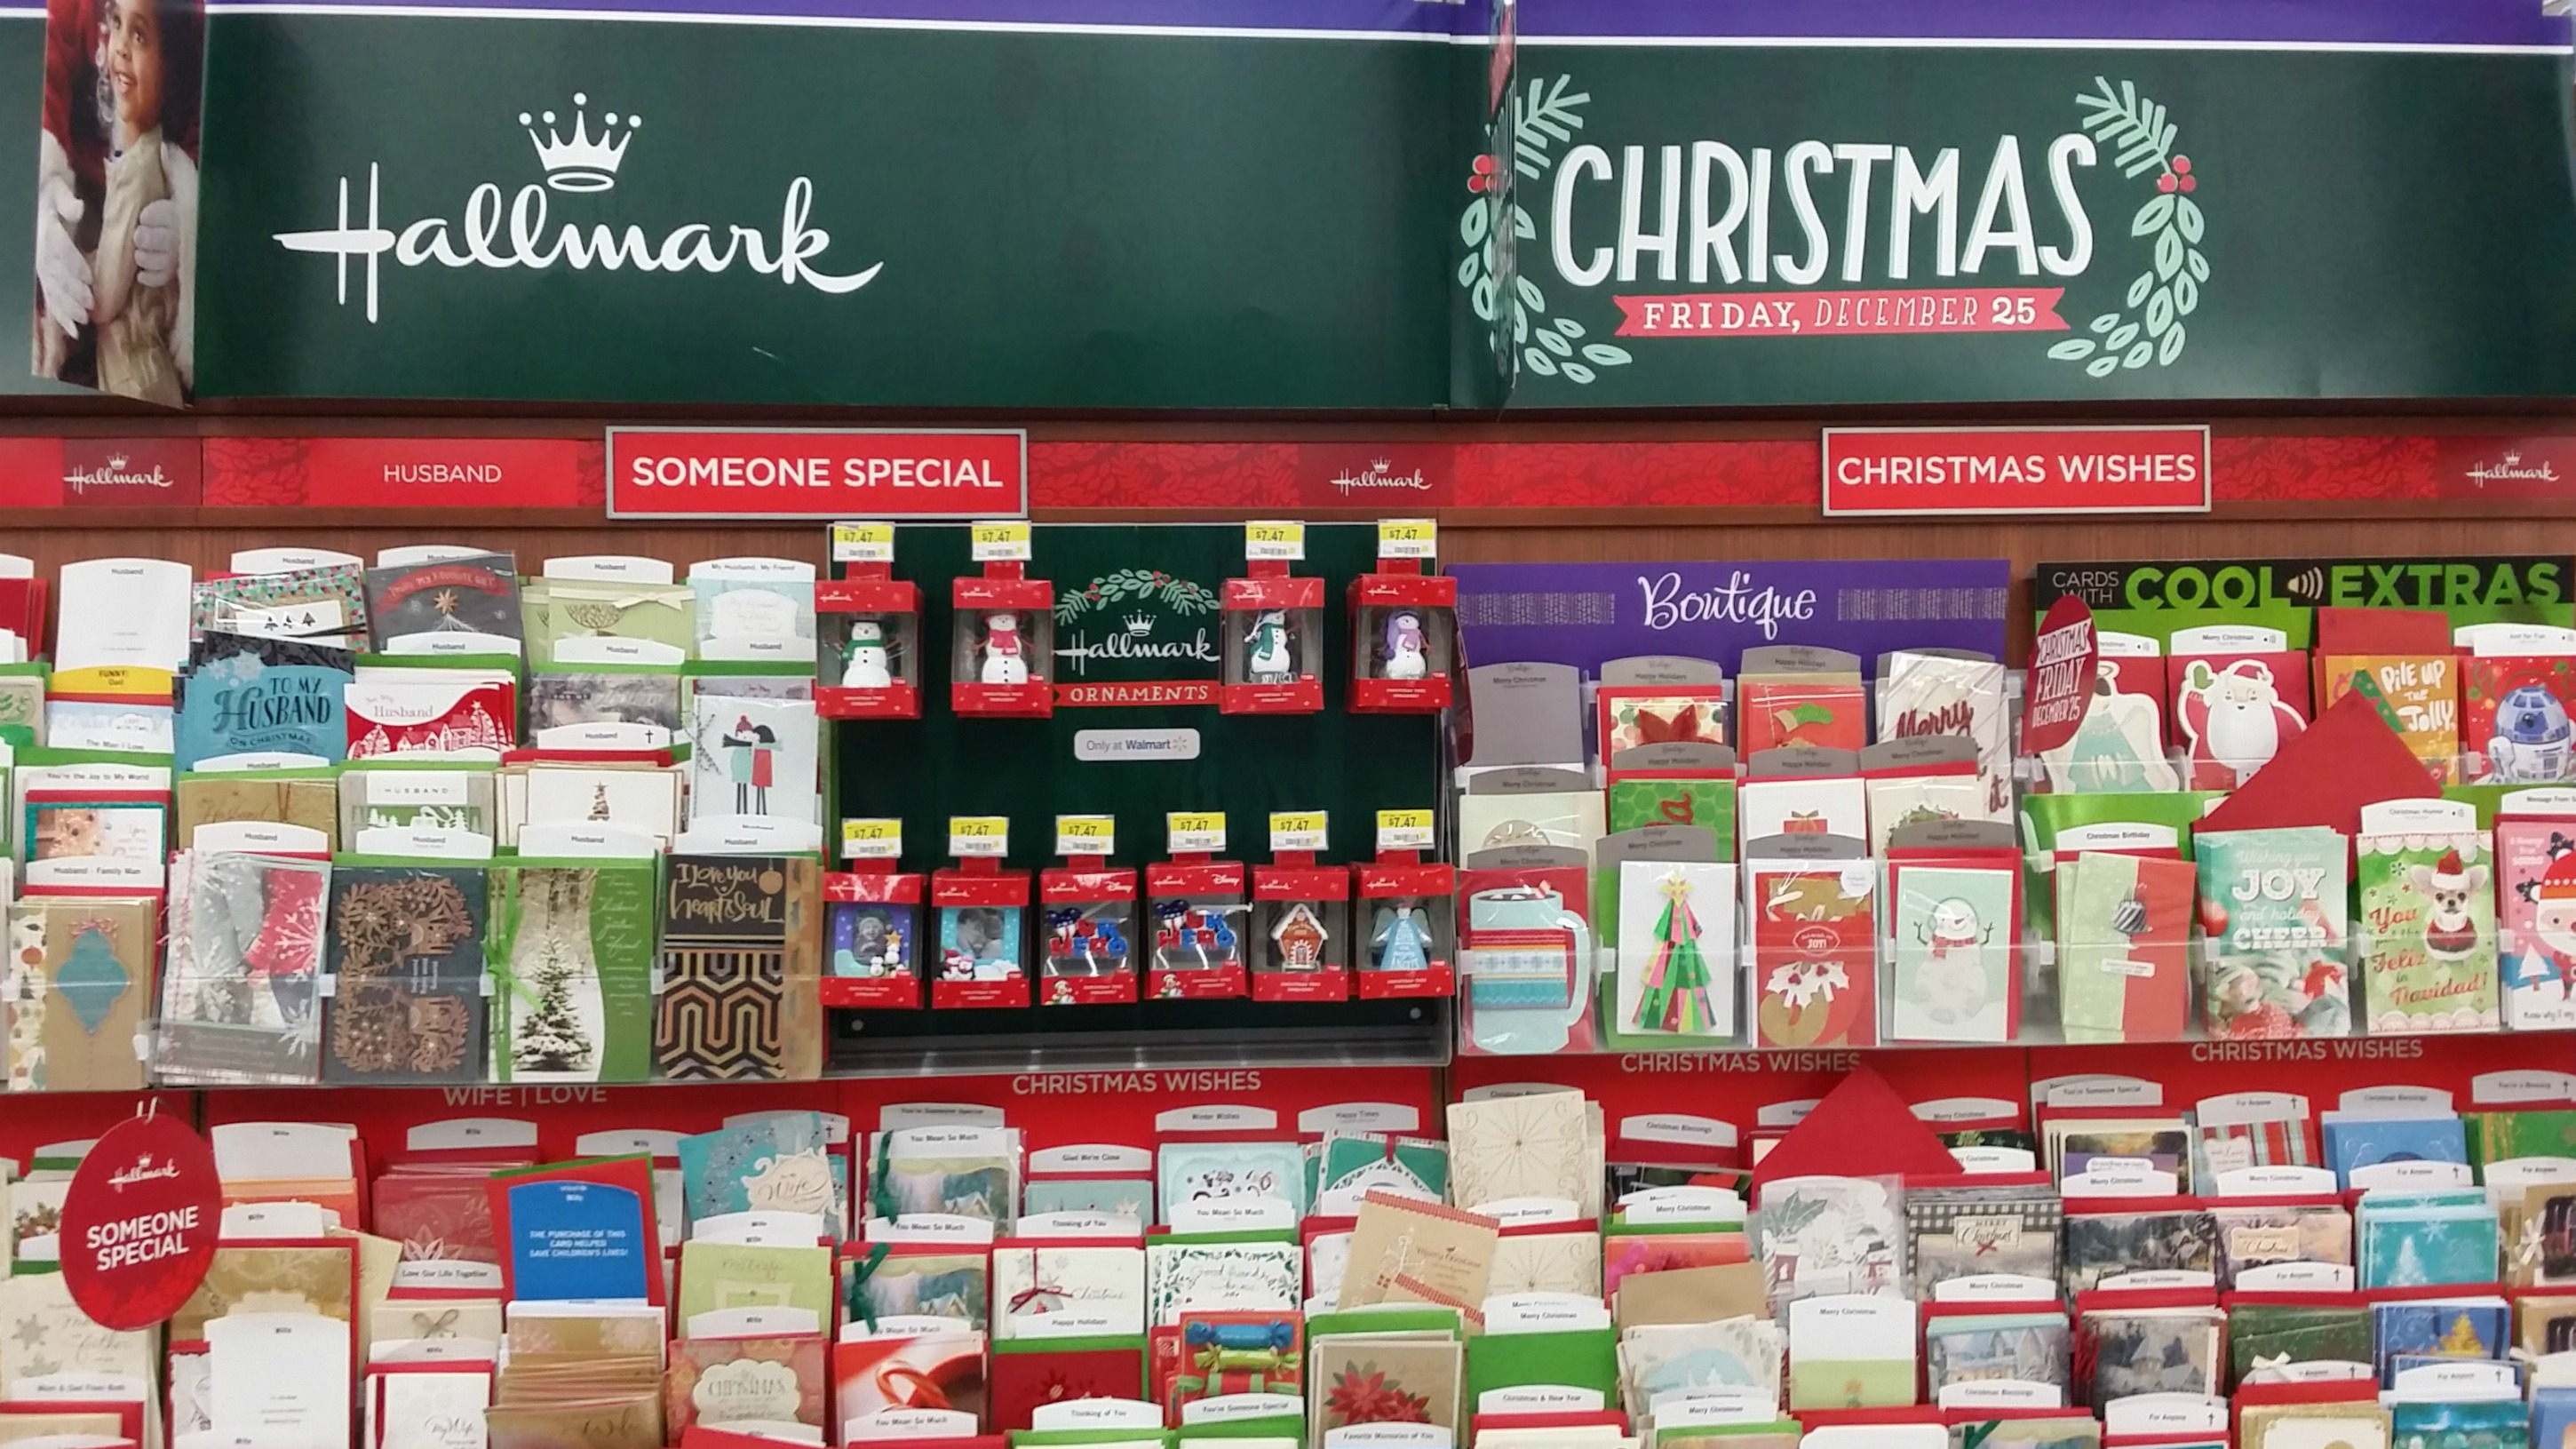 Walmart Photo Greeting Cards Christmas Image Collections Greetings